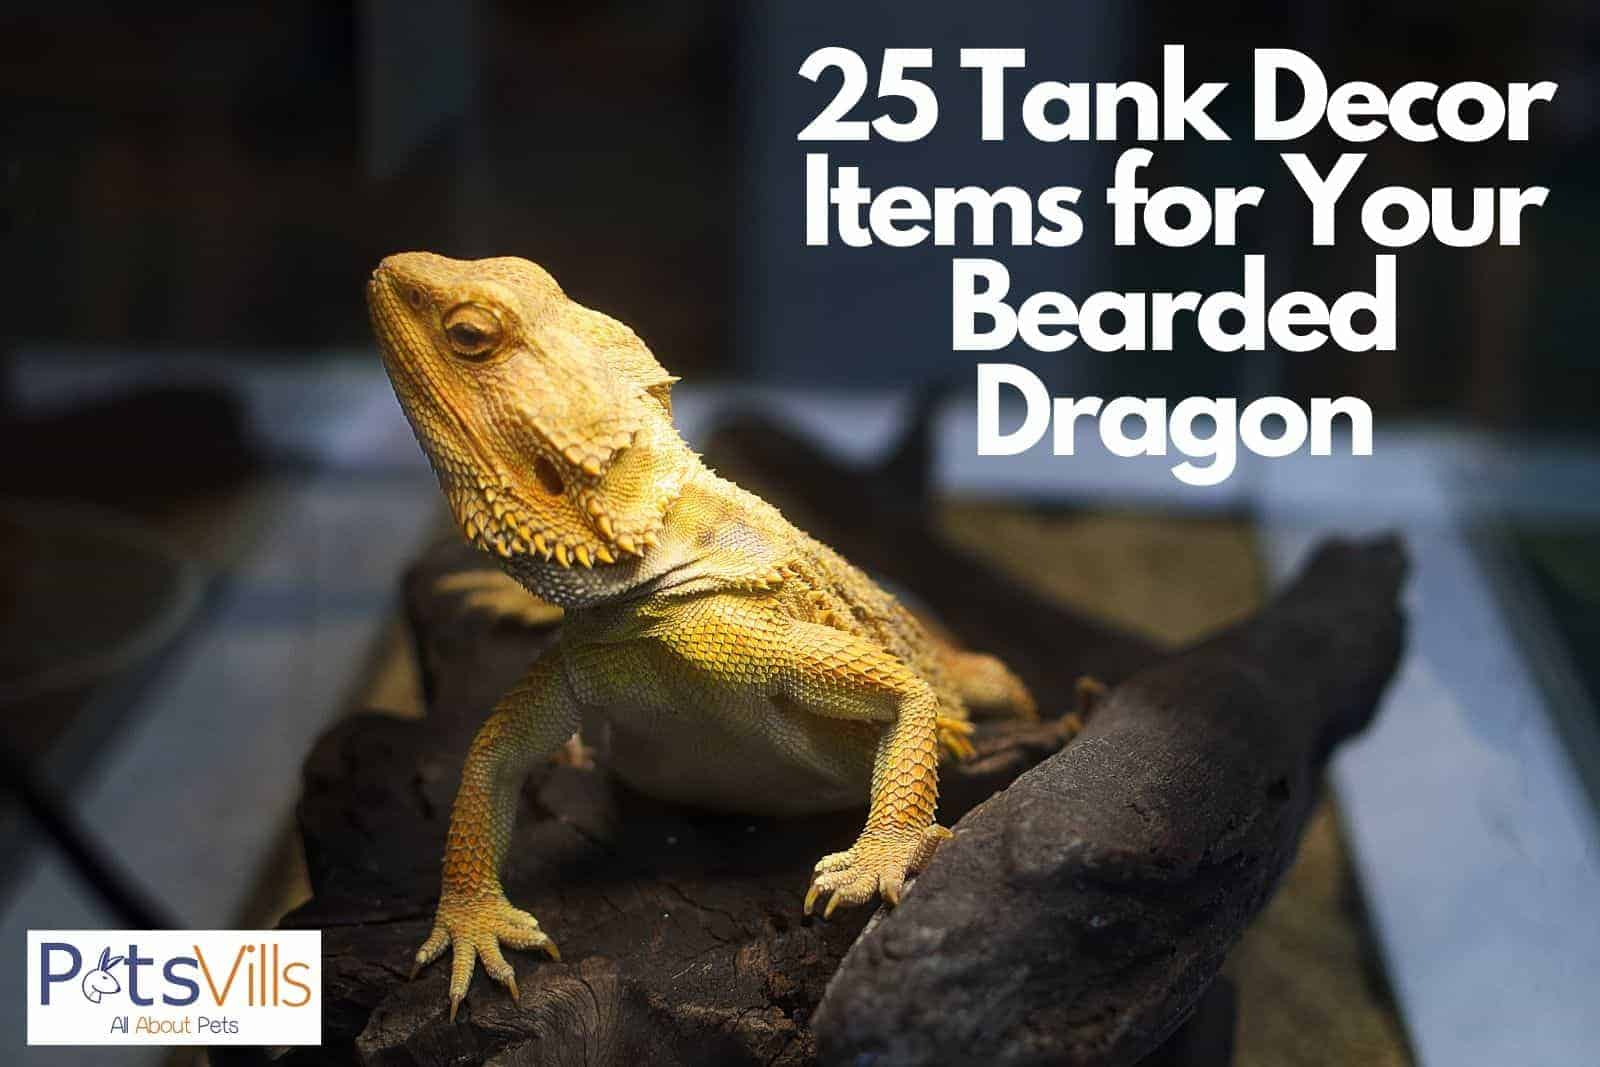 yellow bearded dragon on top of his tank decor items for bearded dragon